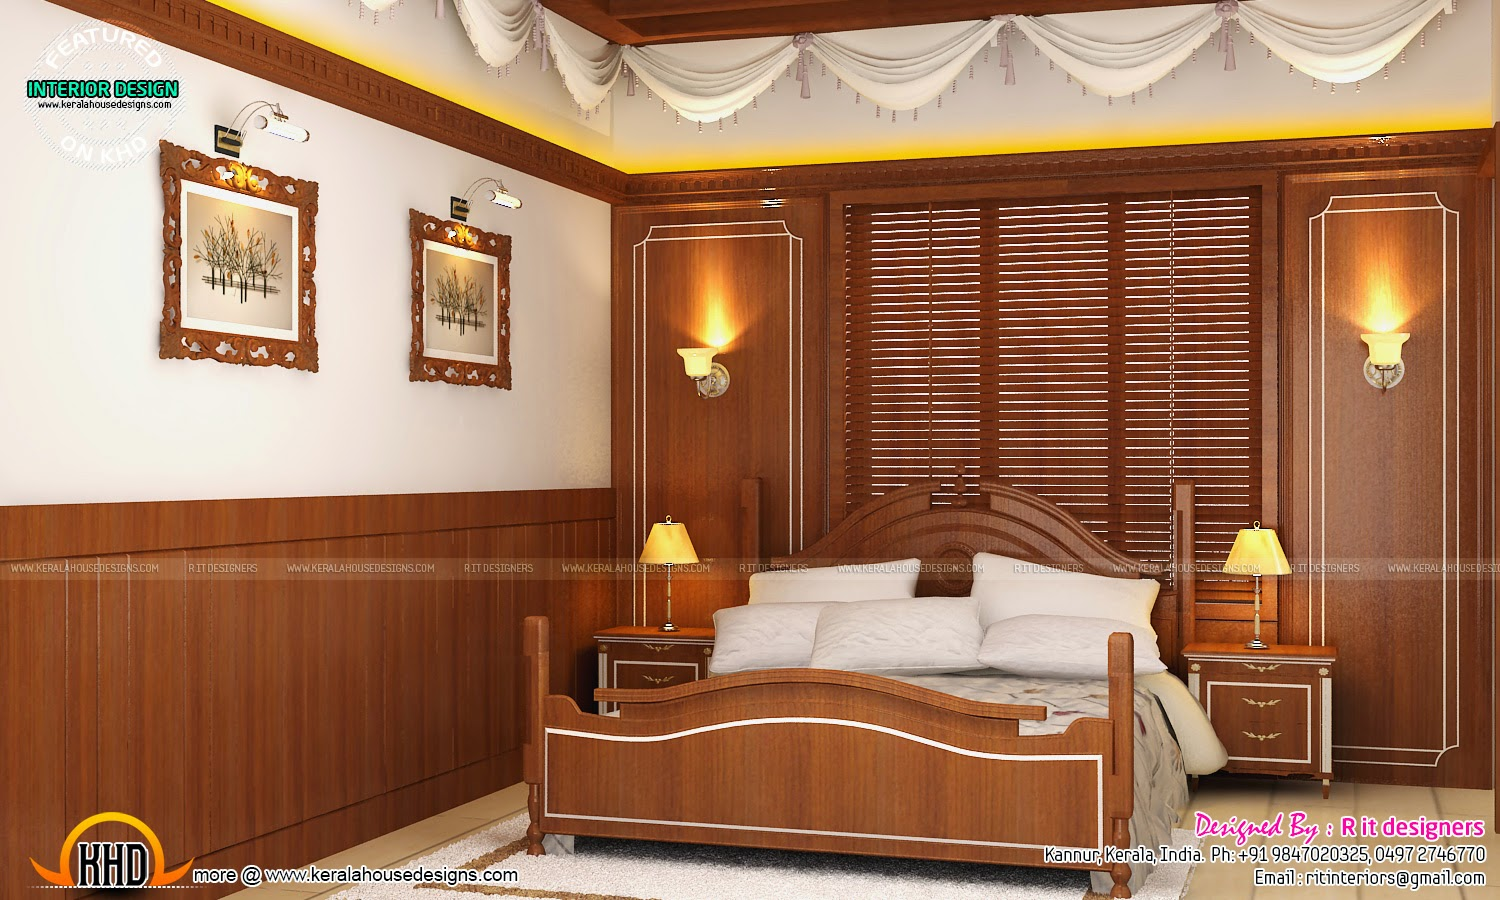 Flat roof house tamilnadu keralahousedesigns Home interior design bedroom